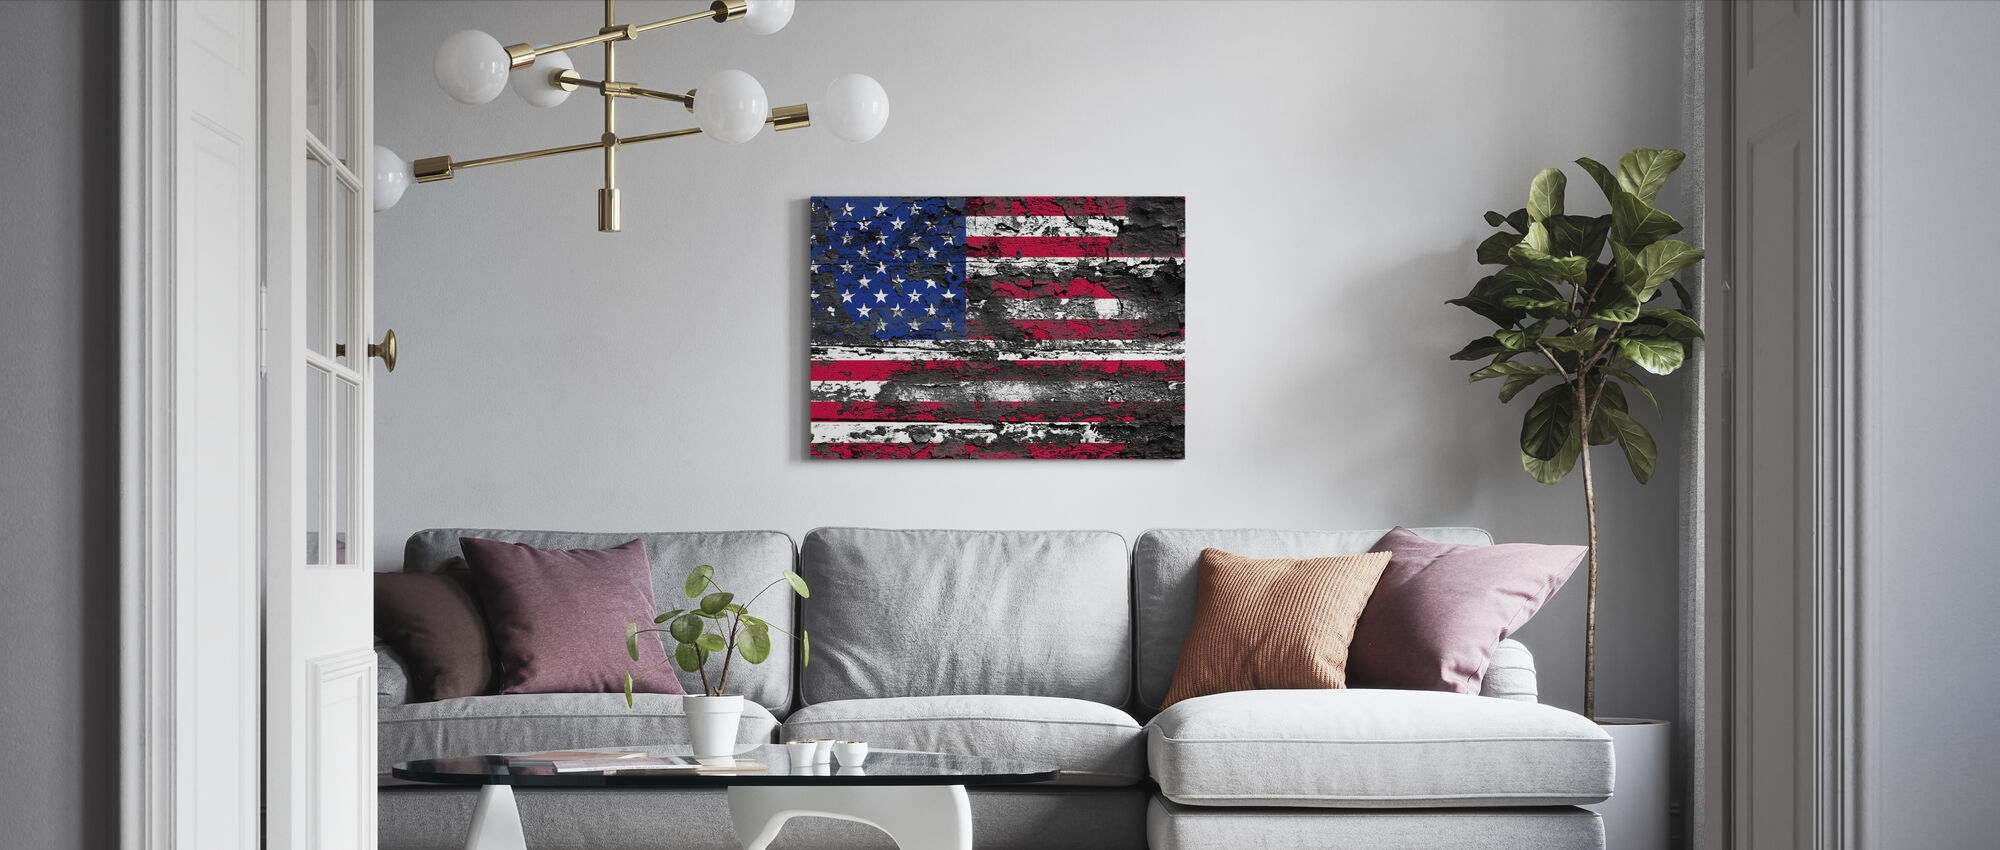 American Flag - Canvas print - Living Room